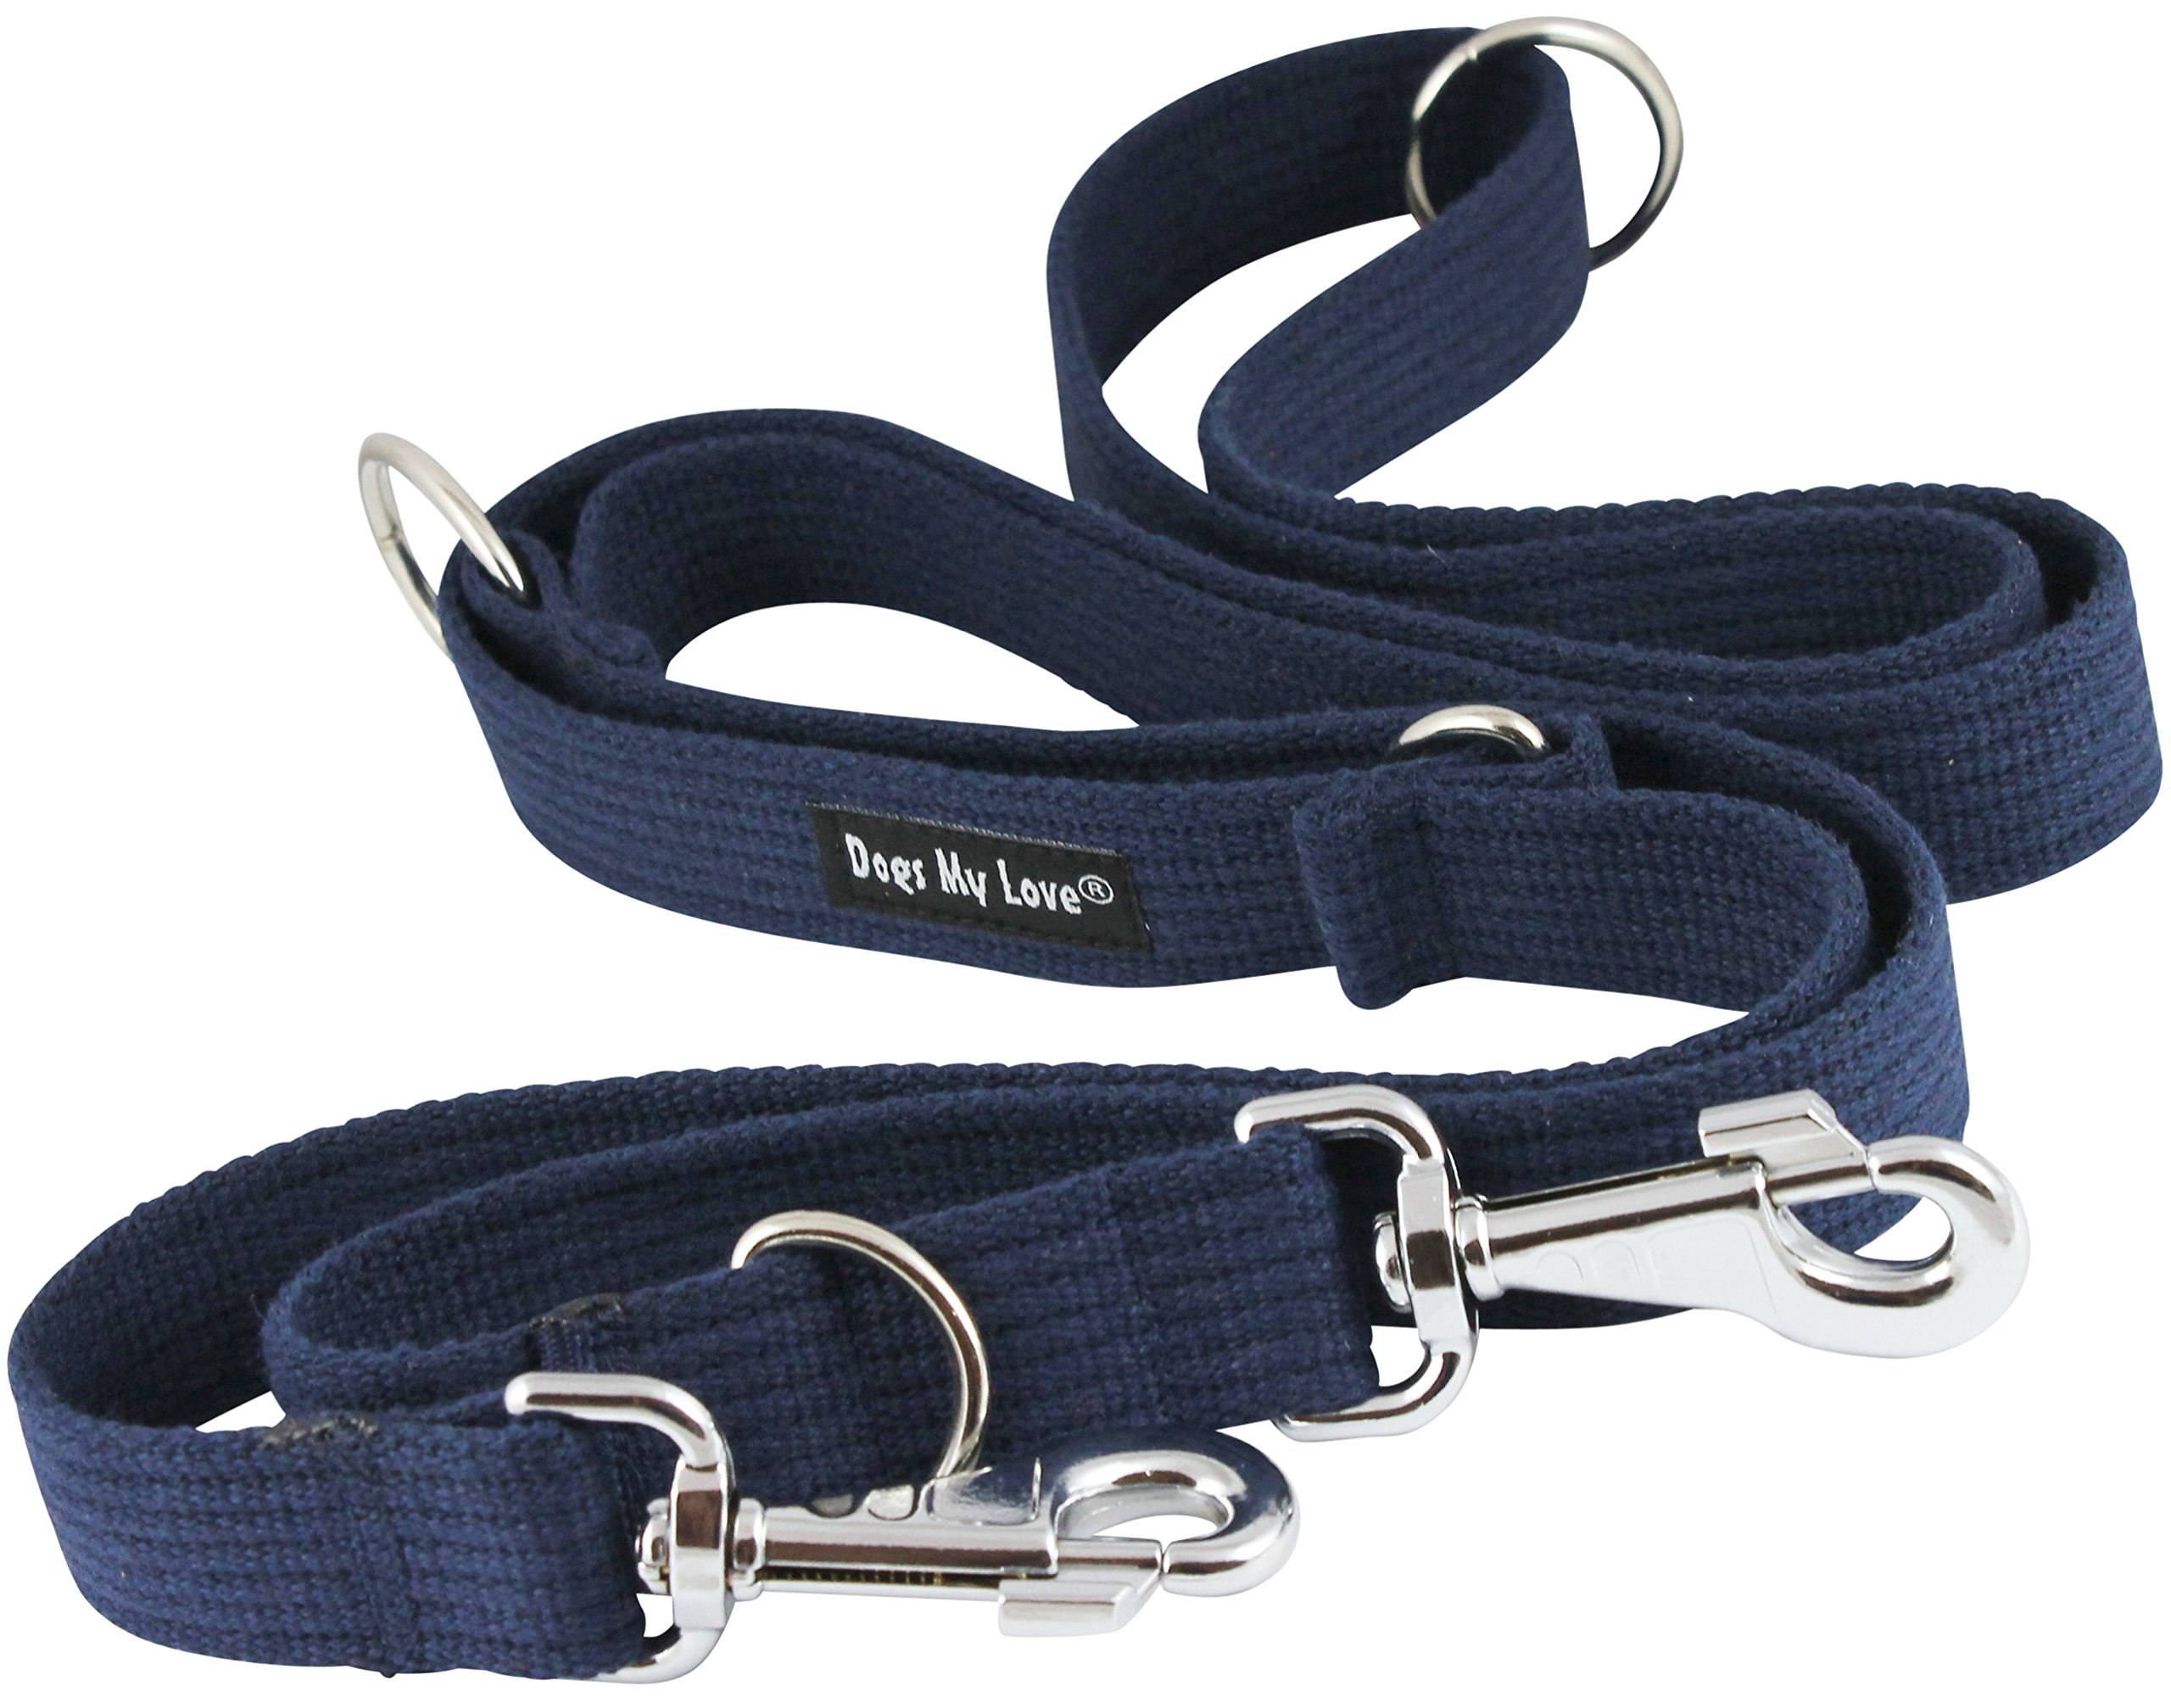 Dogs My Love 1.25'' Wide Cotton Web 6-Way European Multi-Functional Dog Leash, Adjustable Lead 45''-78'' Long, XLarge (Blue) by Dogs My Love